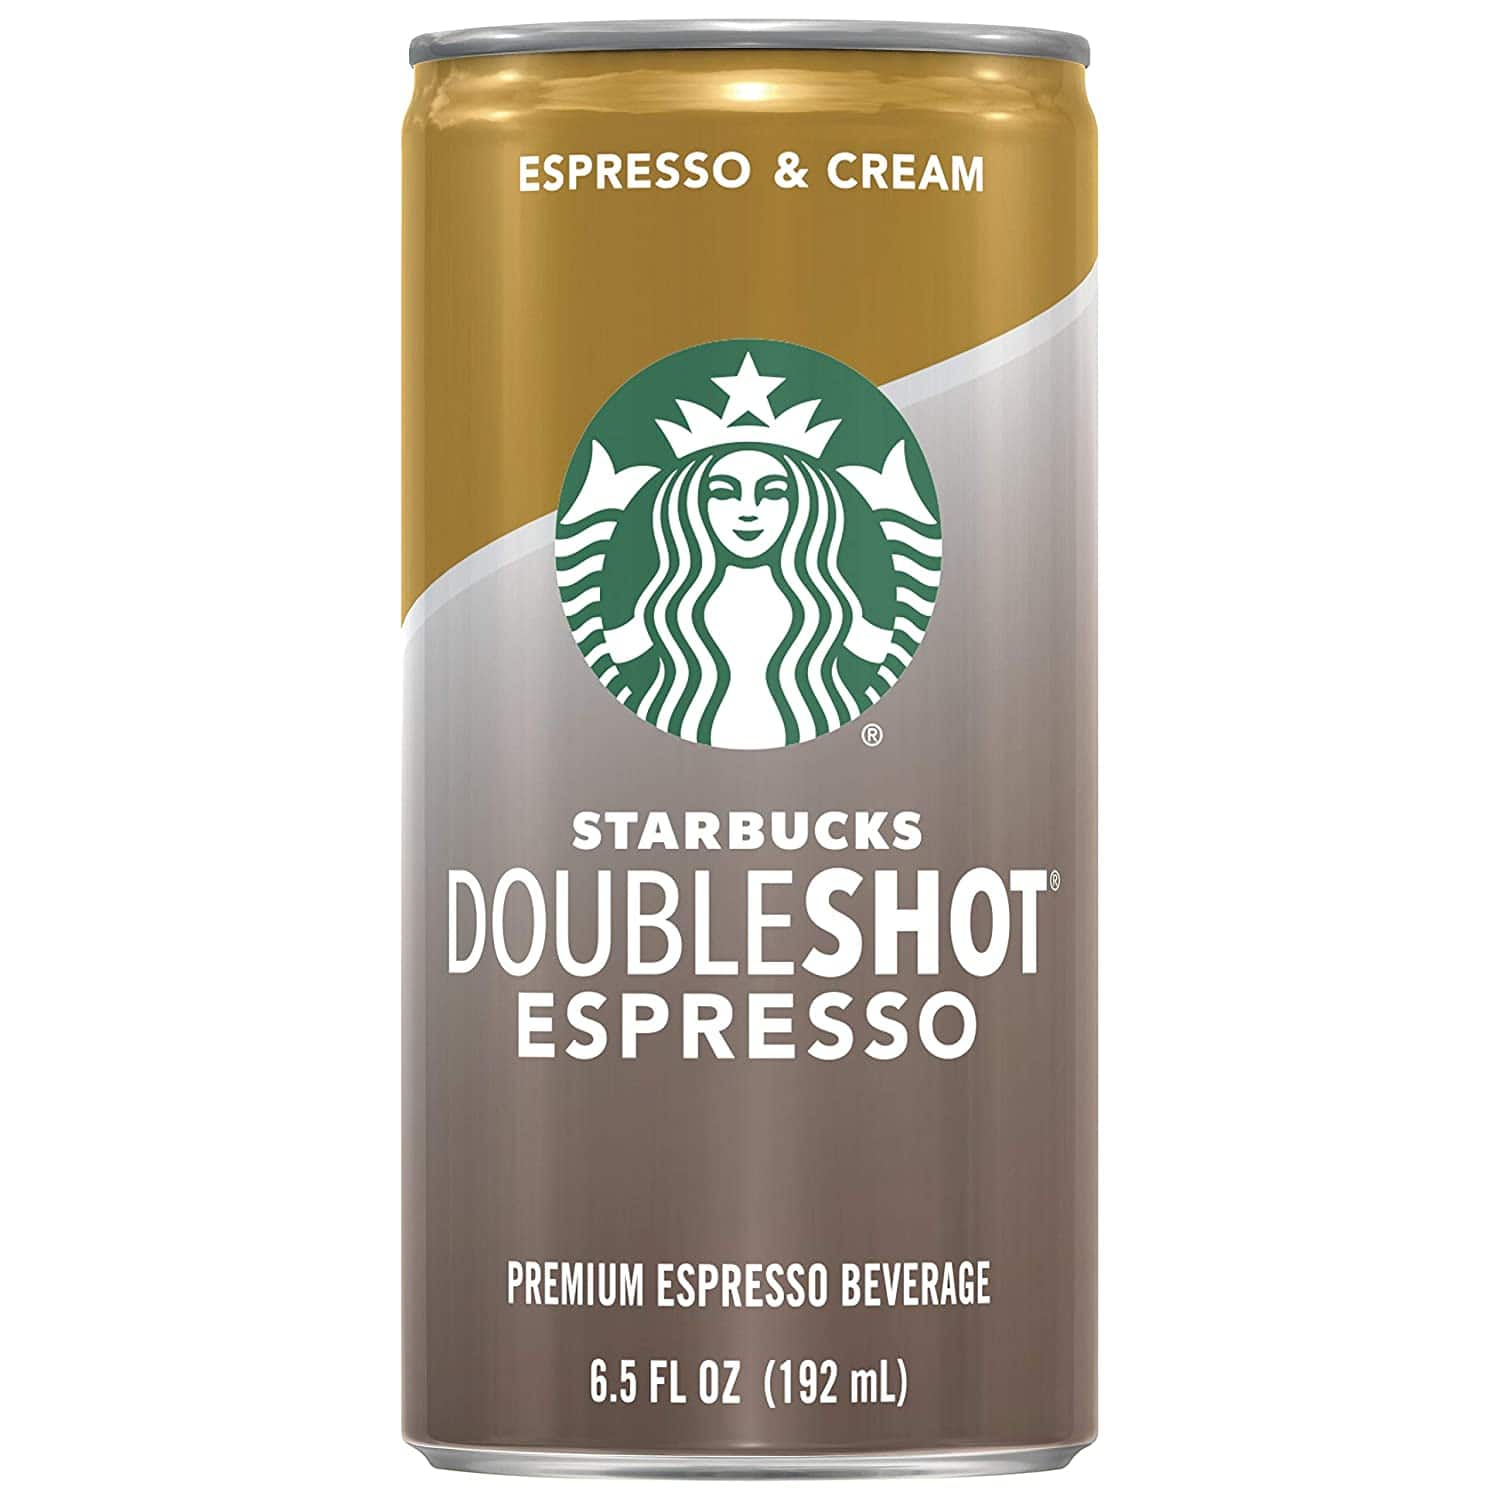 Amazon.com : Starbucks Doubleshot, Espresso + Cream, 6.5 Ounce, 12 Pack : Energy Drinks : Grocery & Gourmet Food $14.97